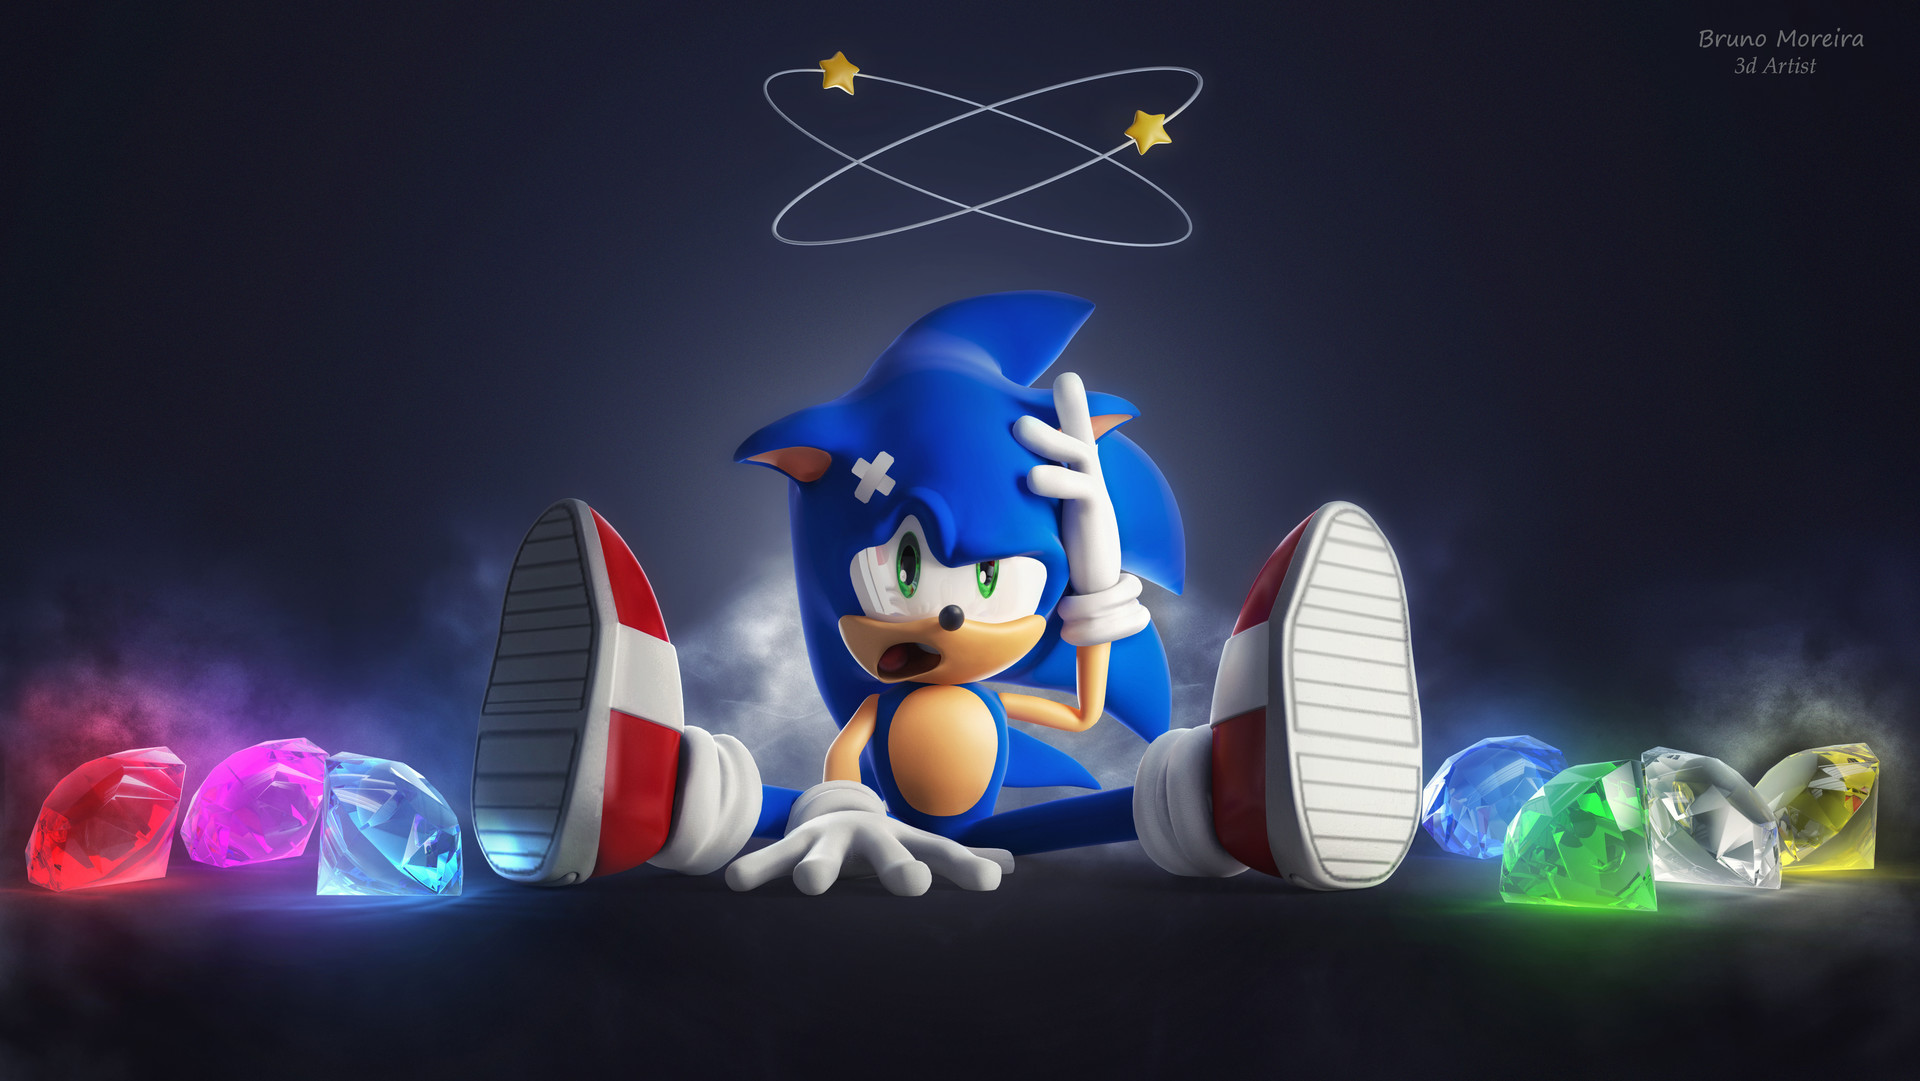 Is the Project Sonic 2017 trailer a real-time graphics demo or CGI ...